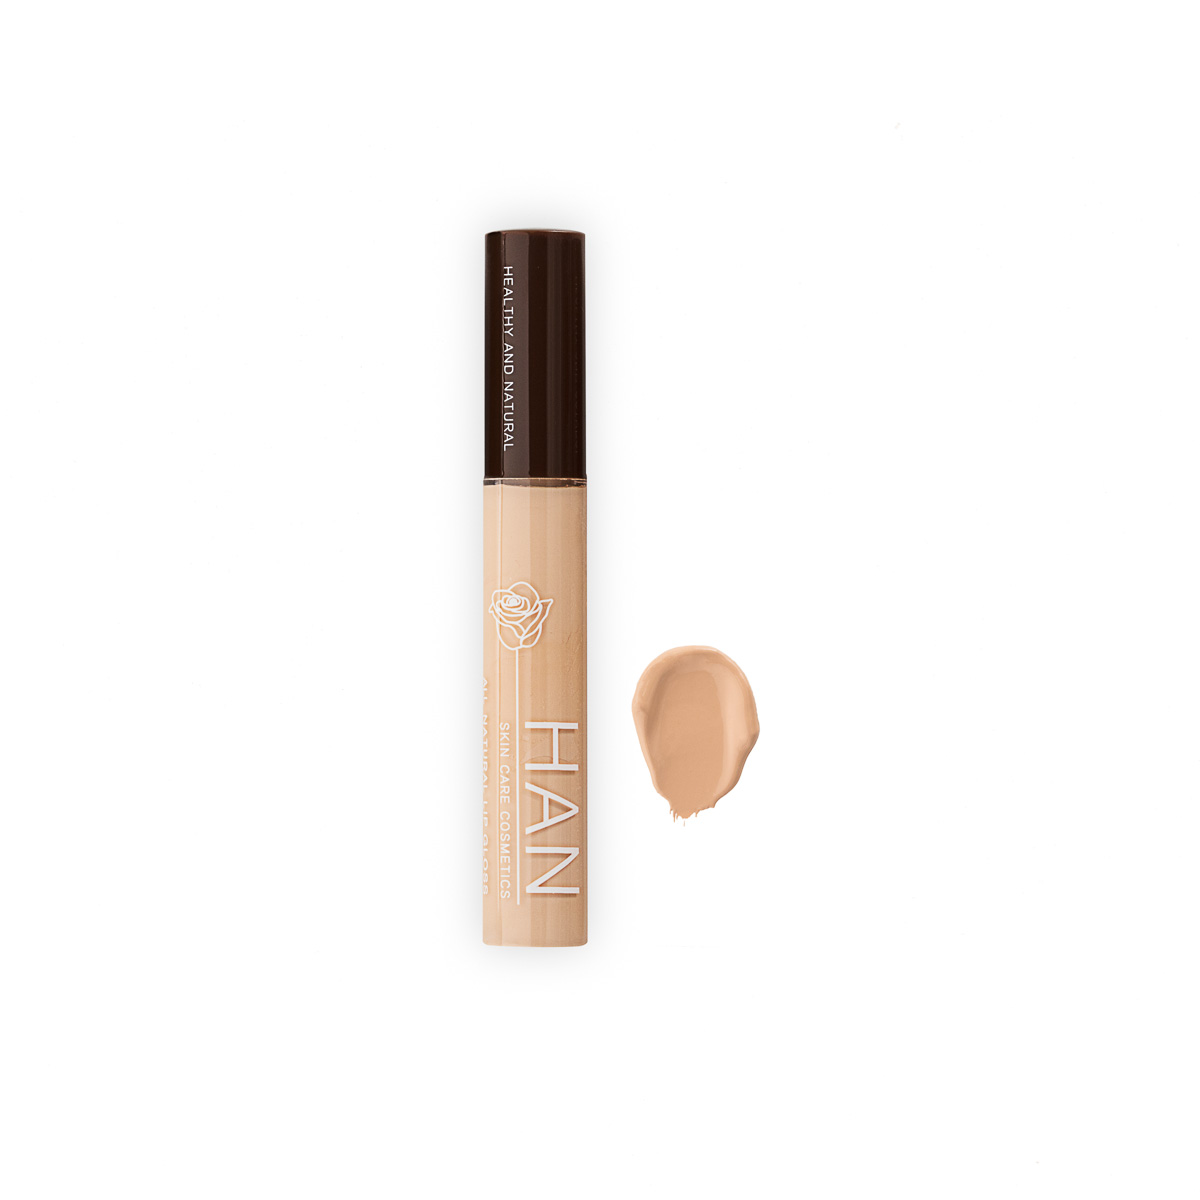 HAN Concealer - Fair Light